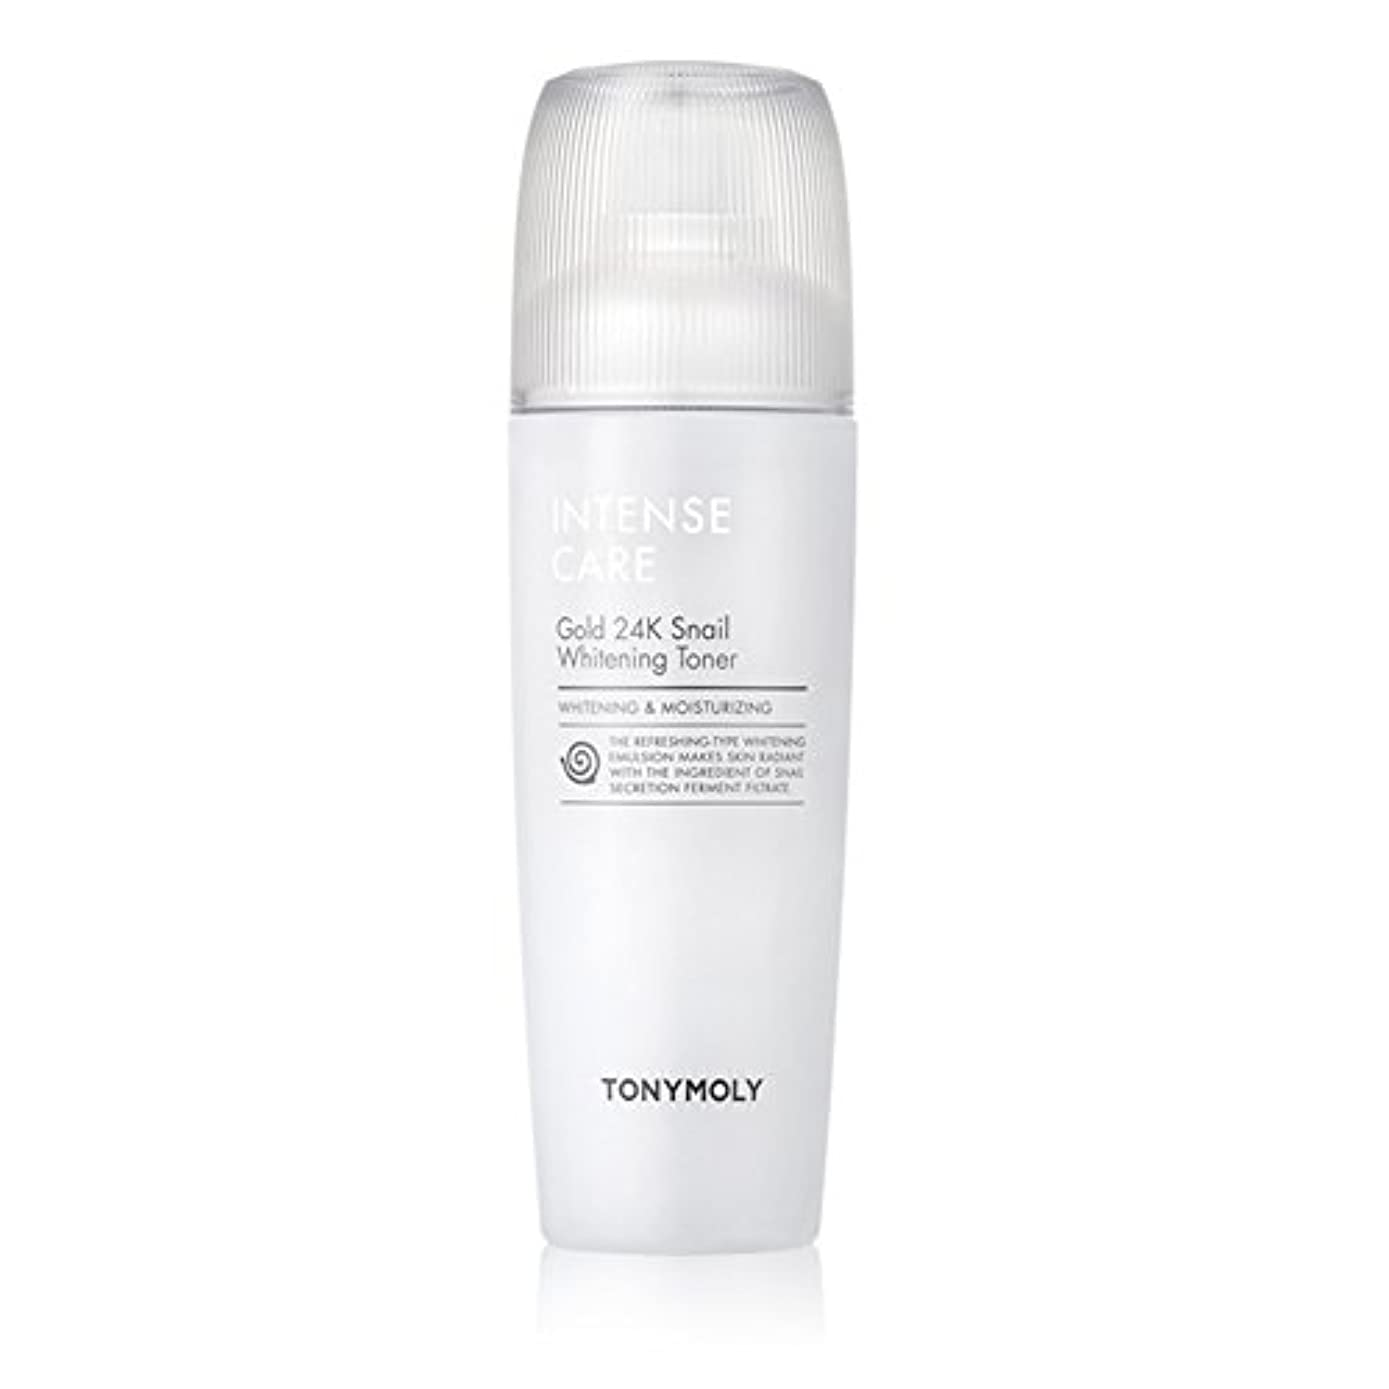 例示する正直関係ないトニモリー TONYMOLY Intense Care Gold 24K Snail Whitening Toner 130ml